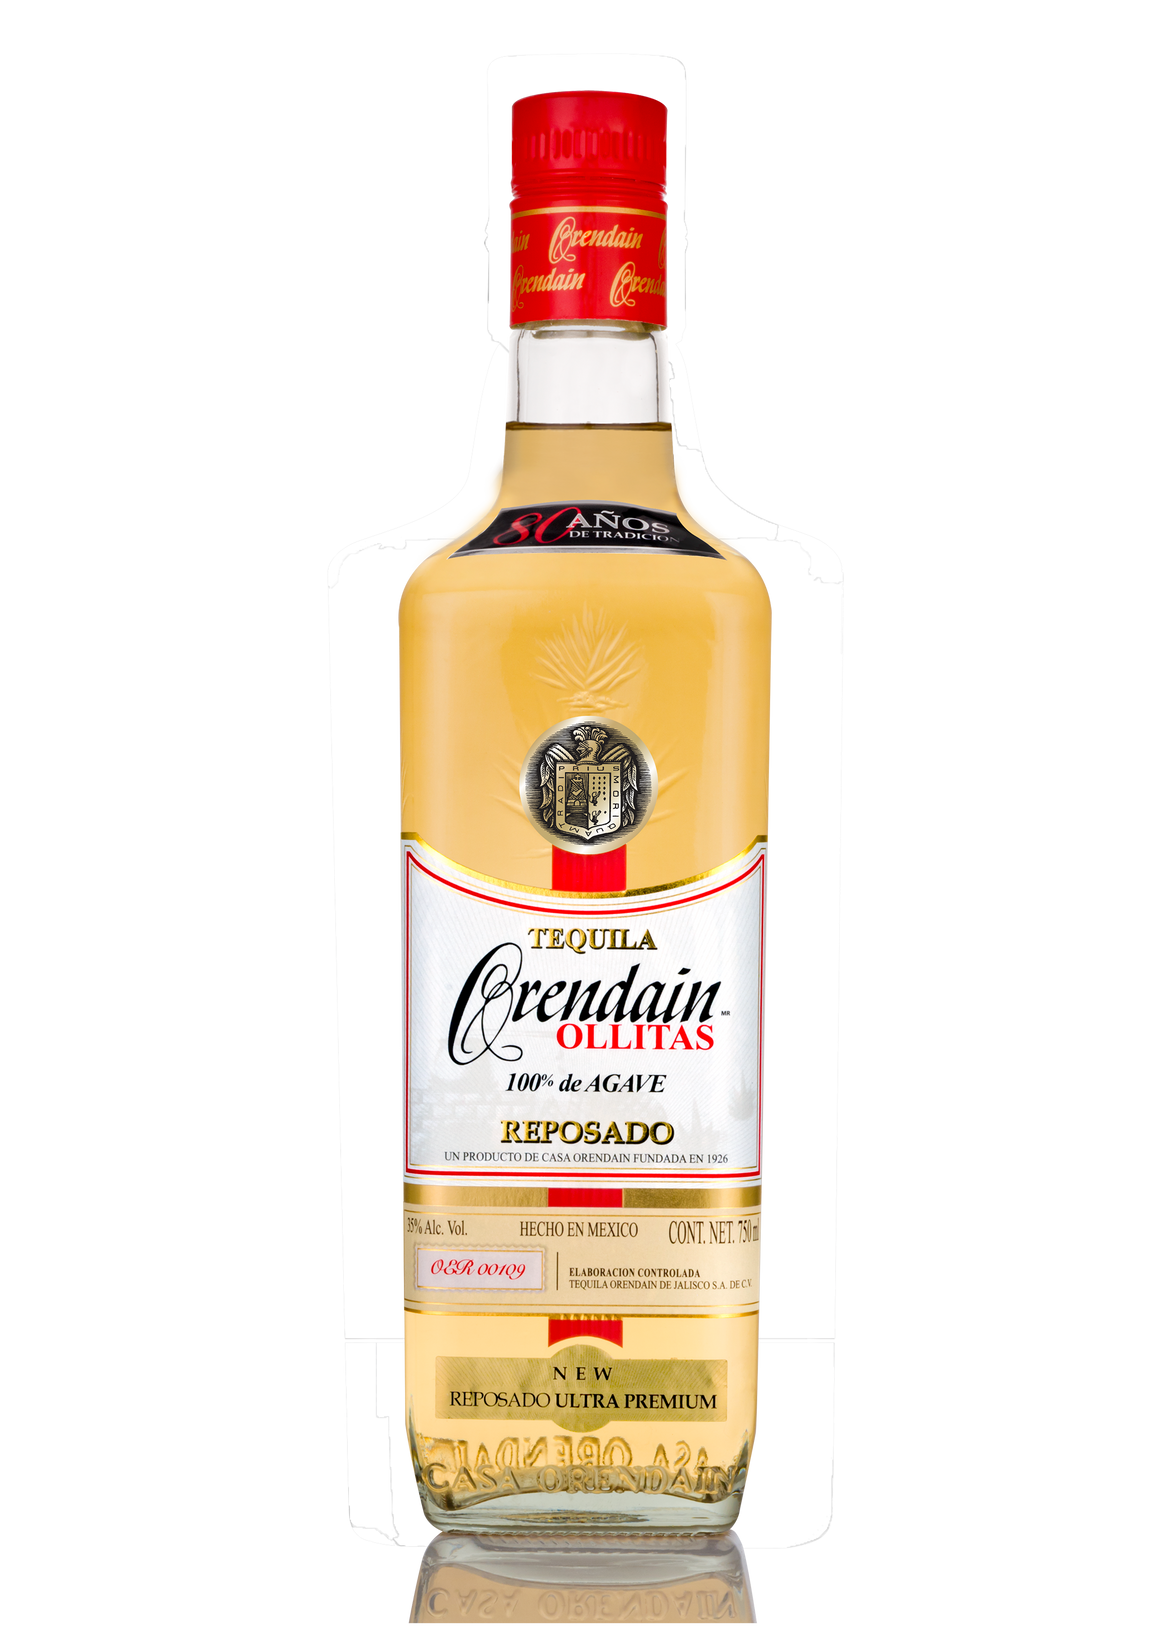 Old bottle Orendain Ollitas Reposado 100% Blue Agave